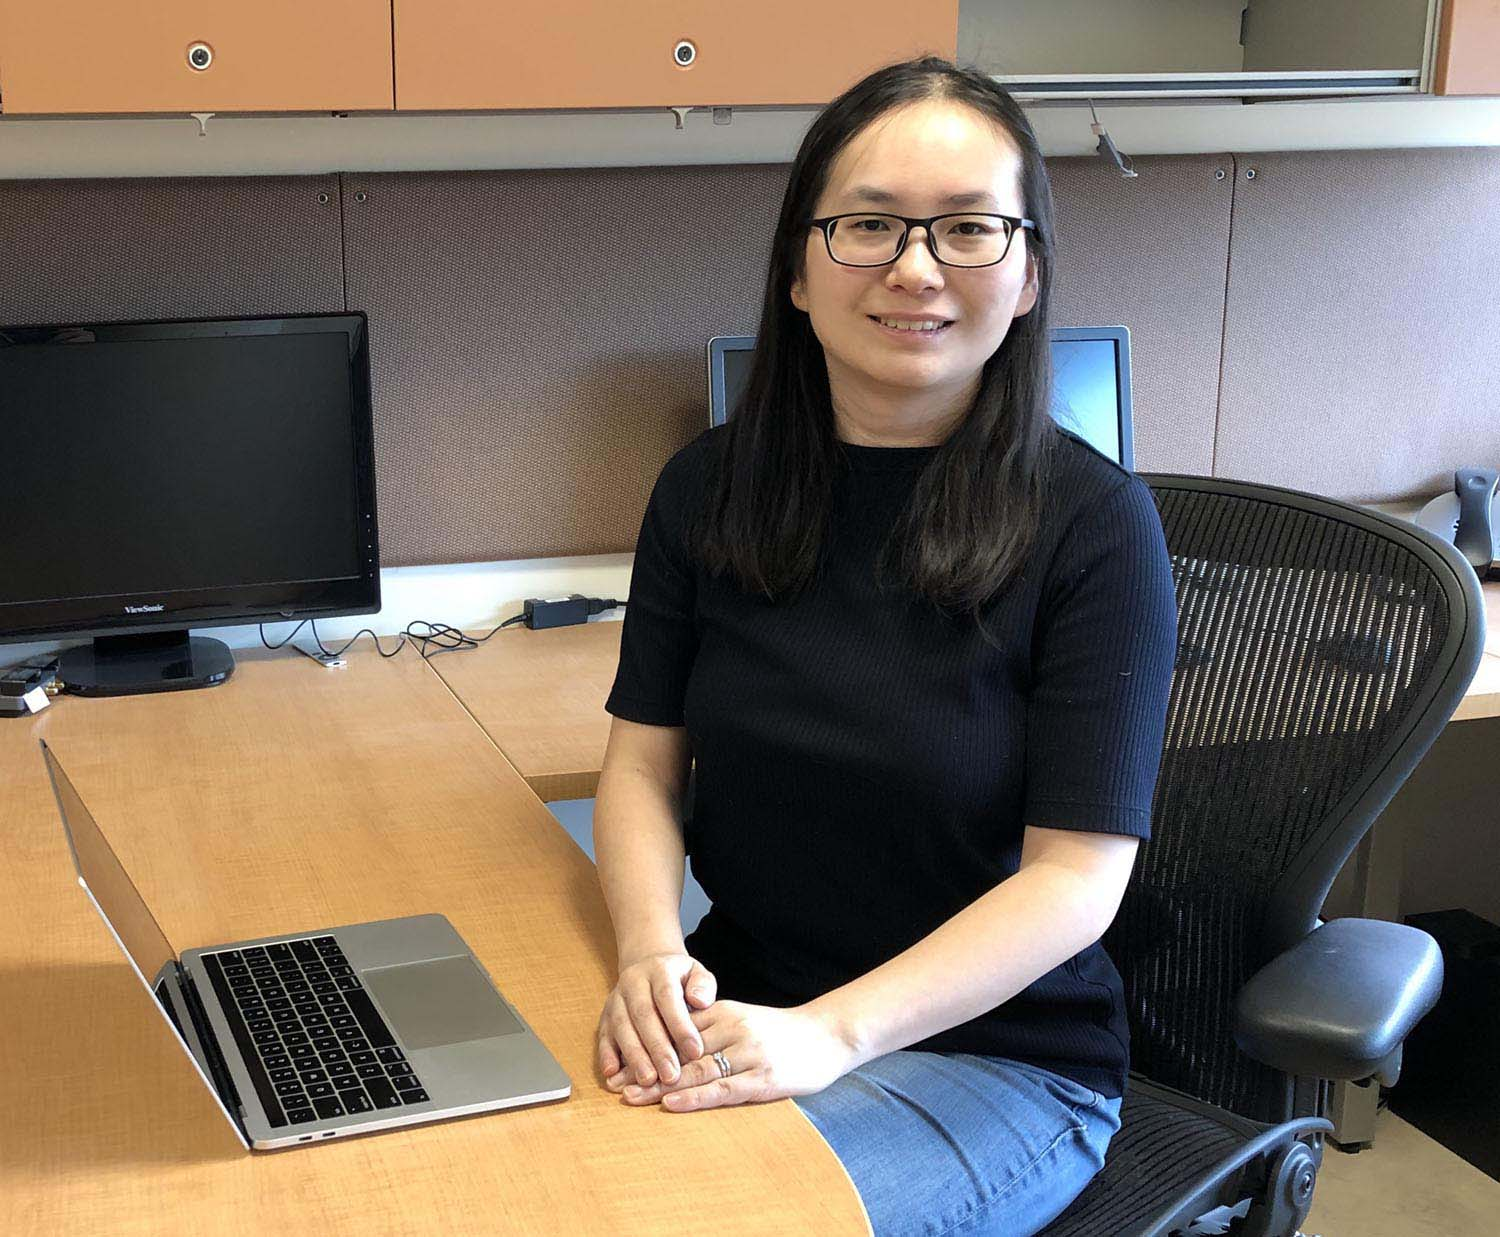 Yao Liu, an assistant professor in the Thomas J. Watson School of Engineering and Applied Science's Department of Computer Science, has won a five-year, $486,169 National Science Foundation CAREER Award to fund her research.